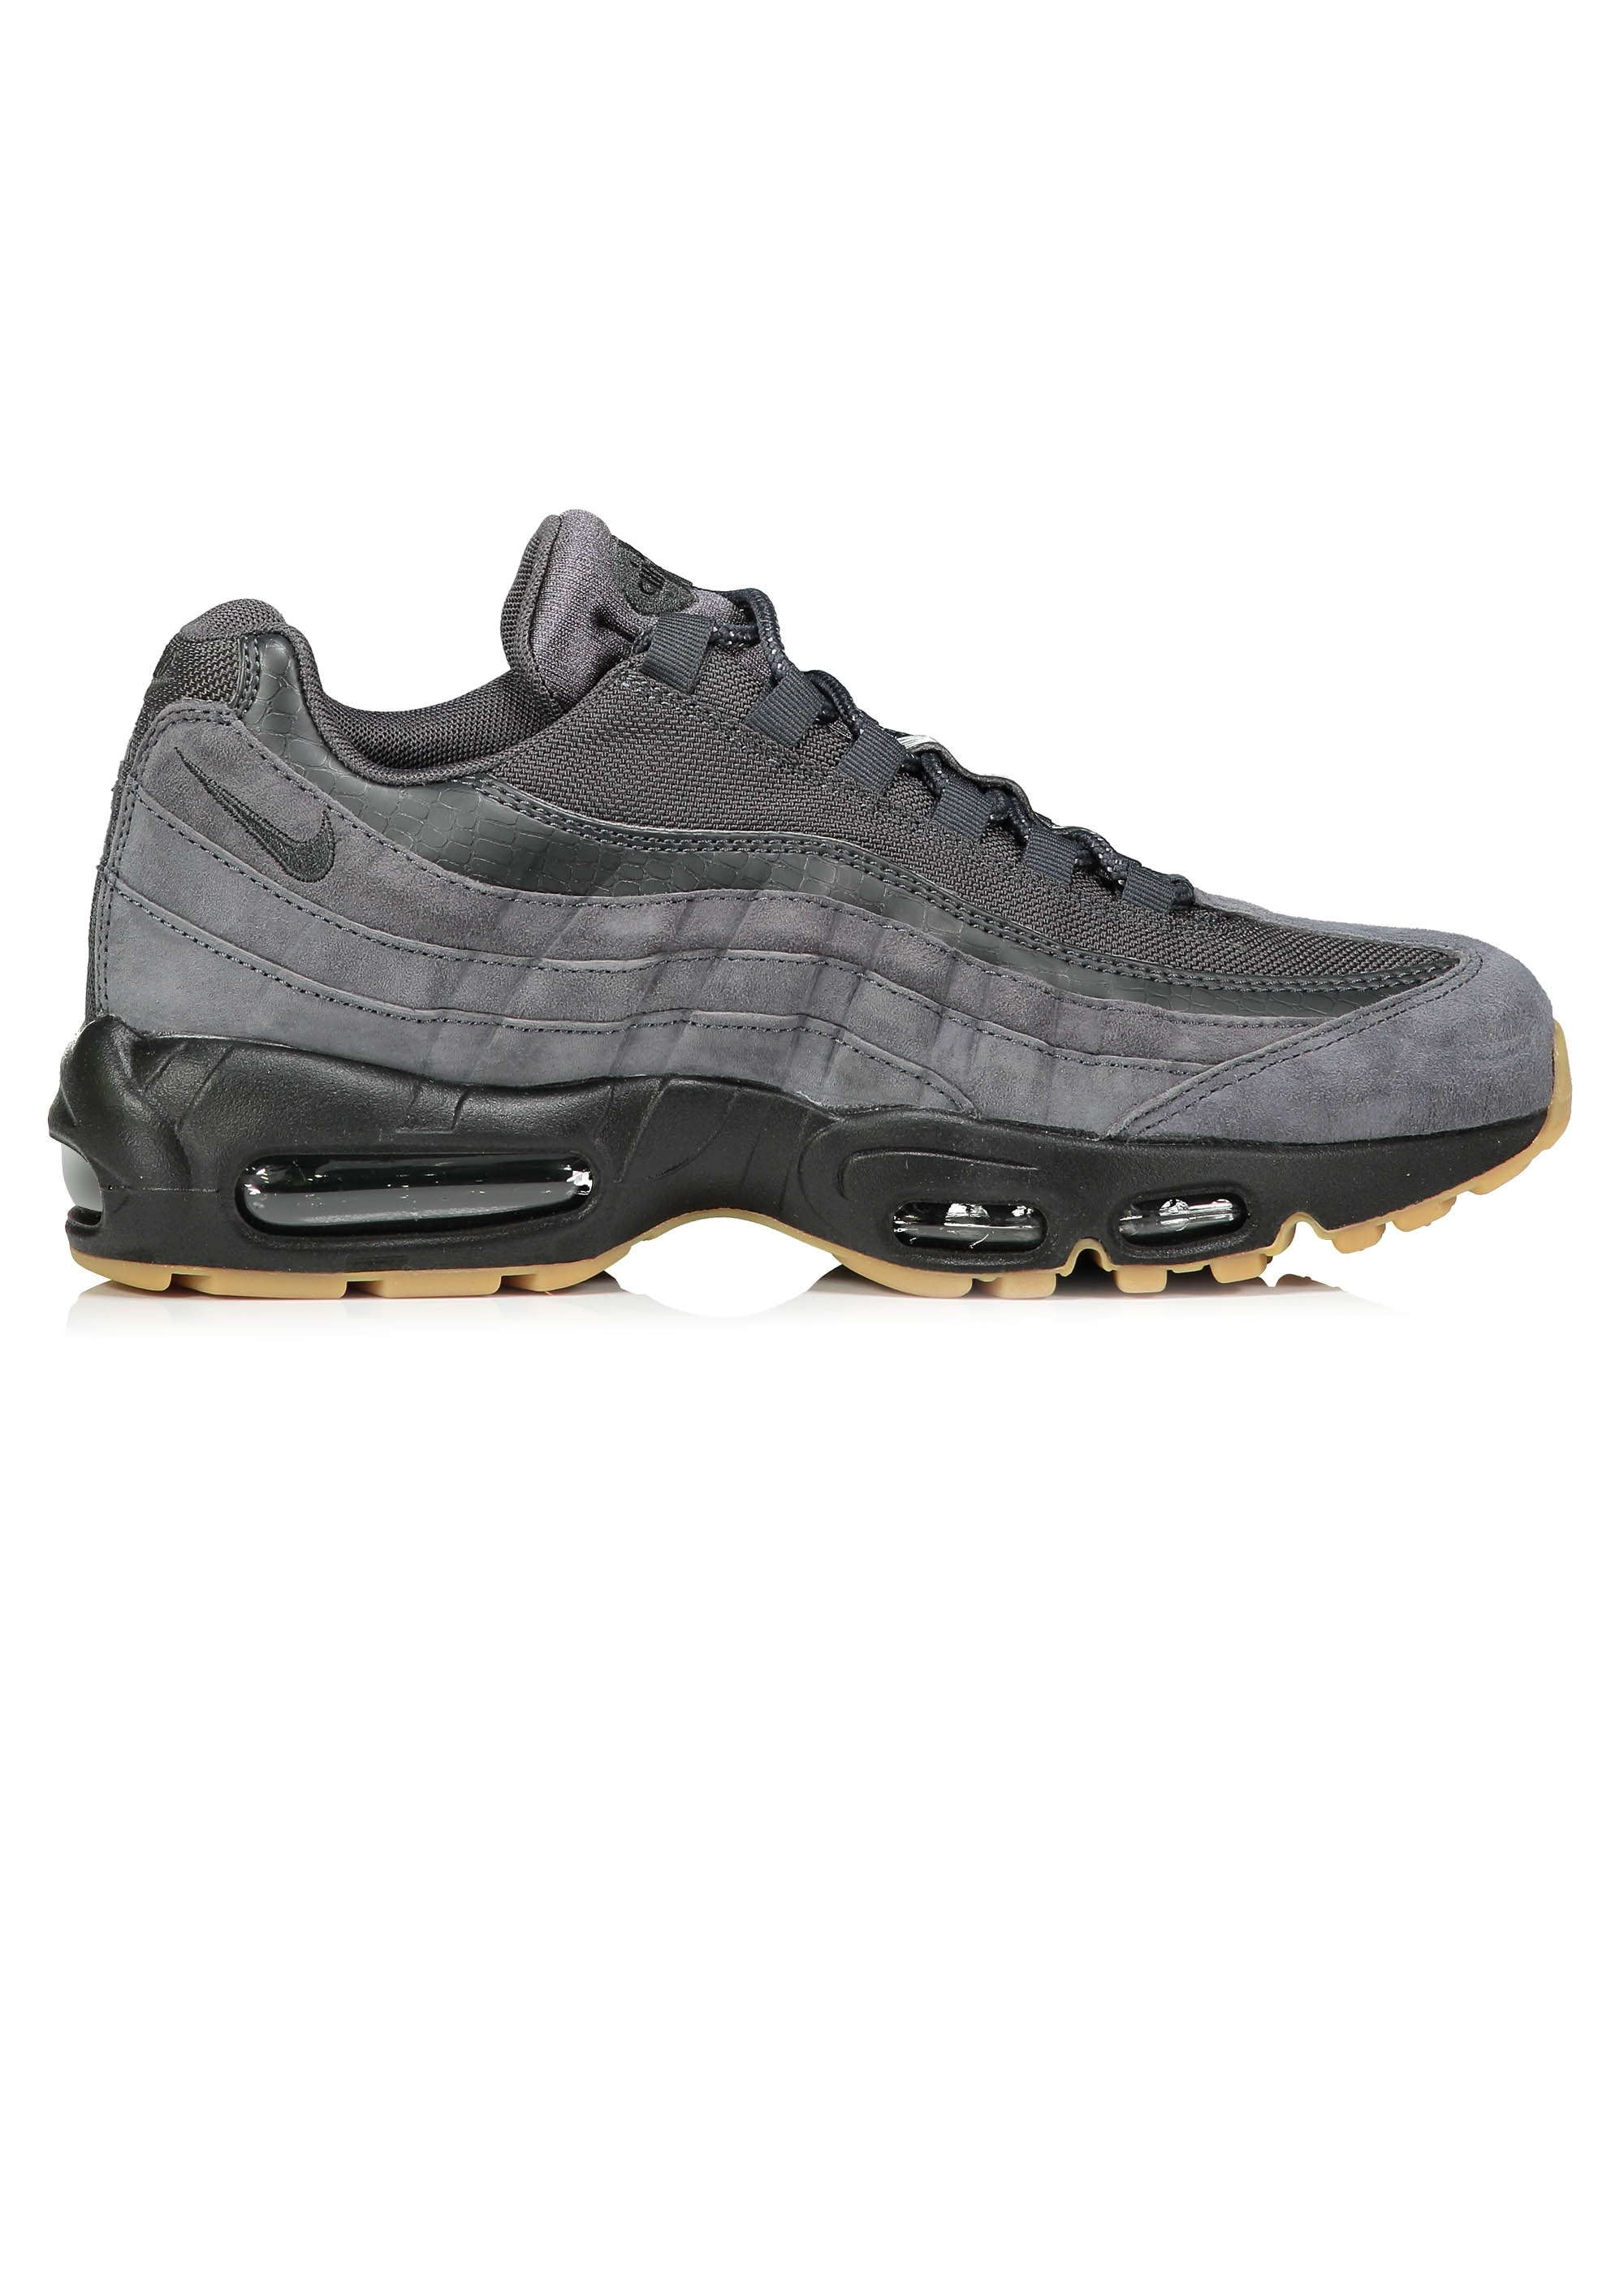 Nike Air Max 95 SE - Anthracite - Triads Mens from Triads UK 22308035dd6e